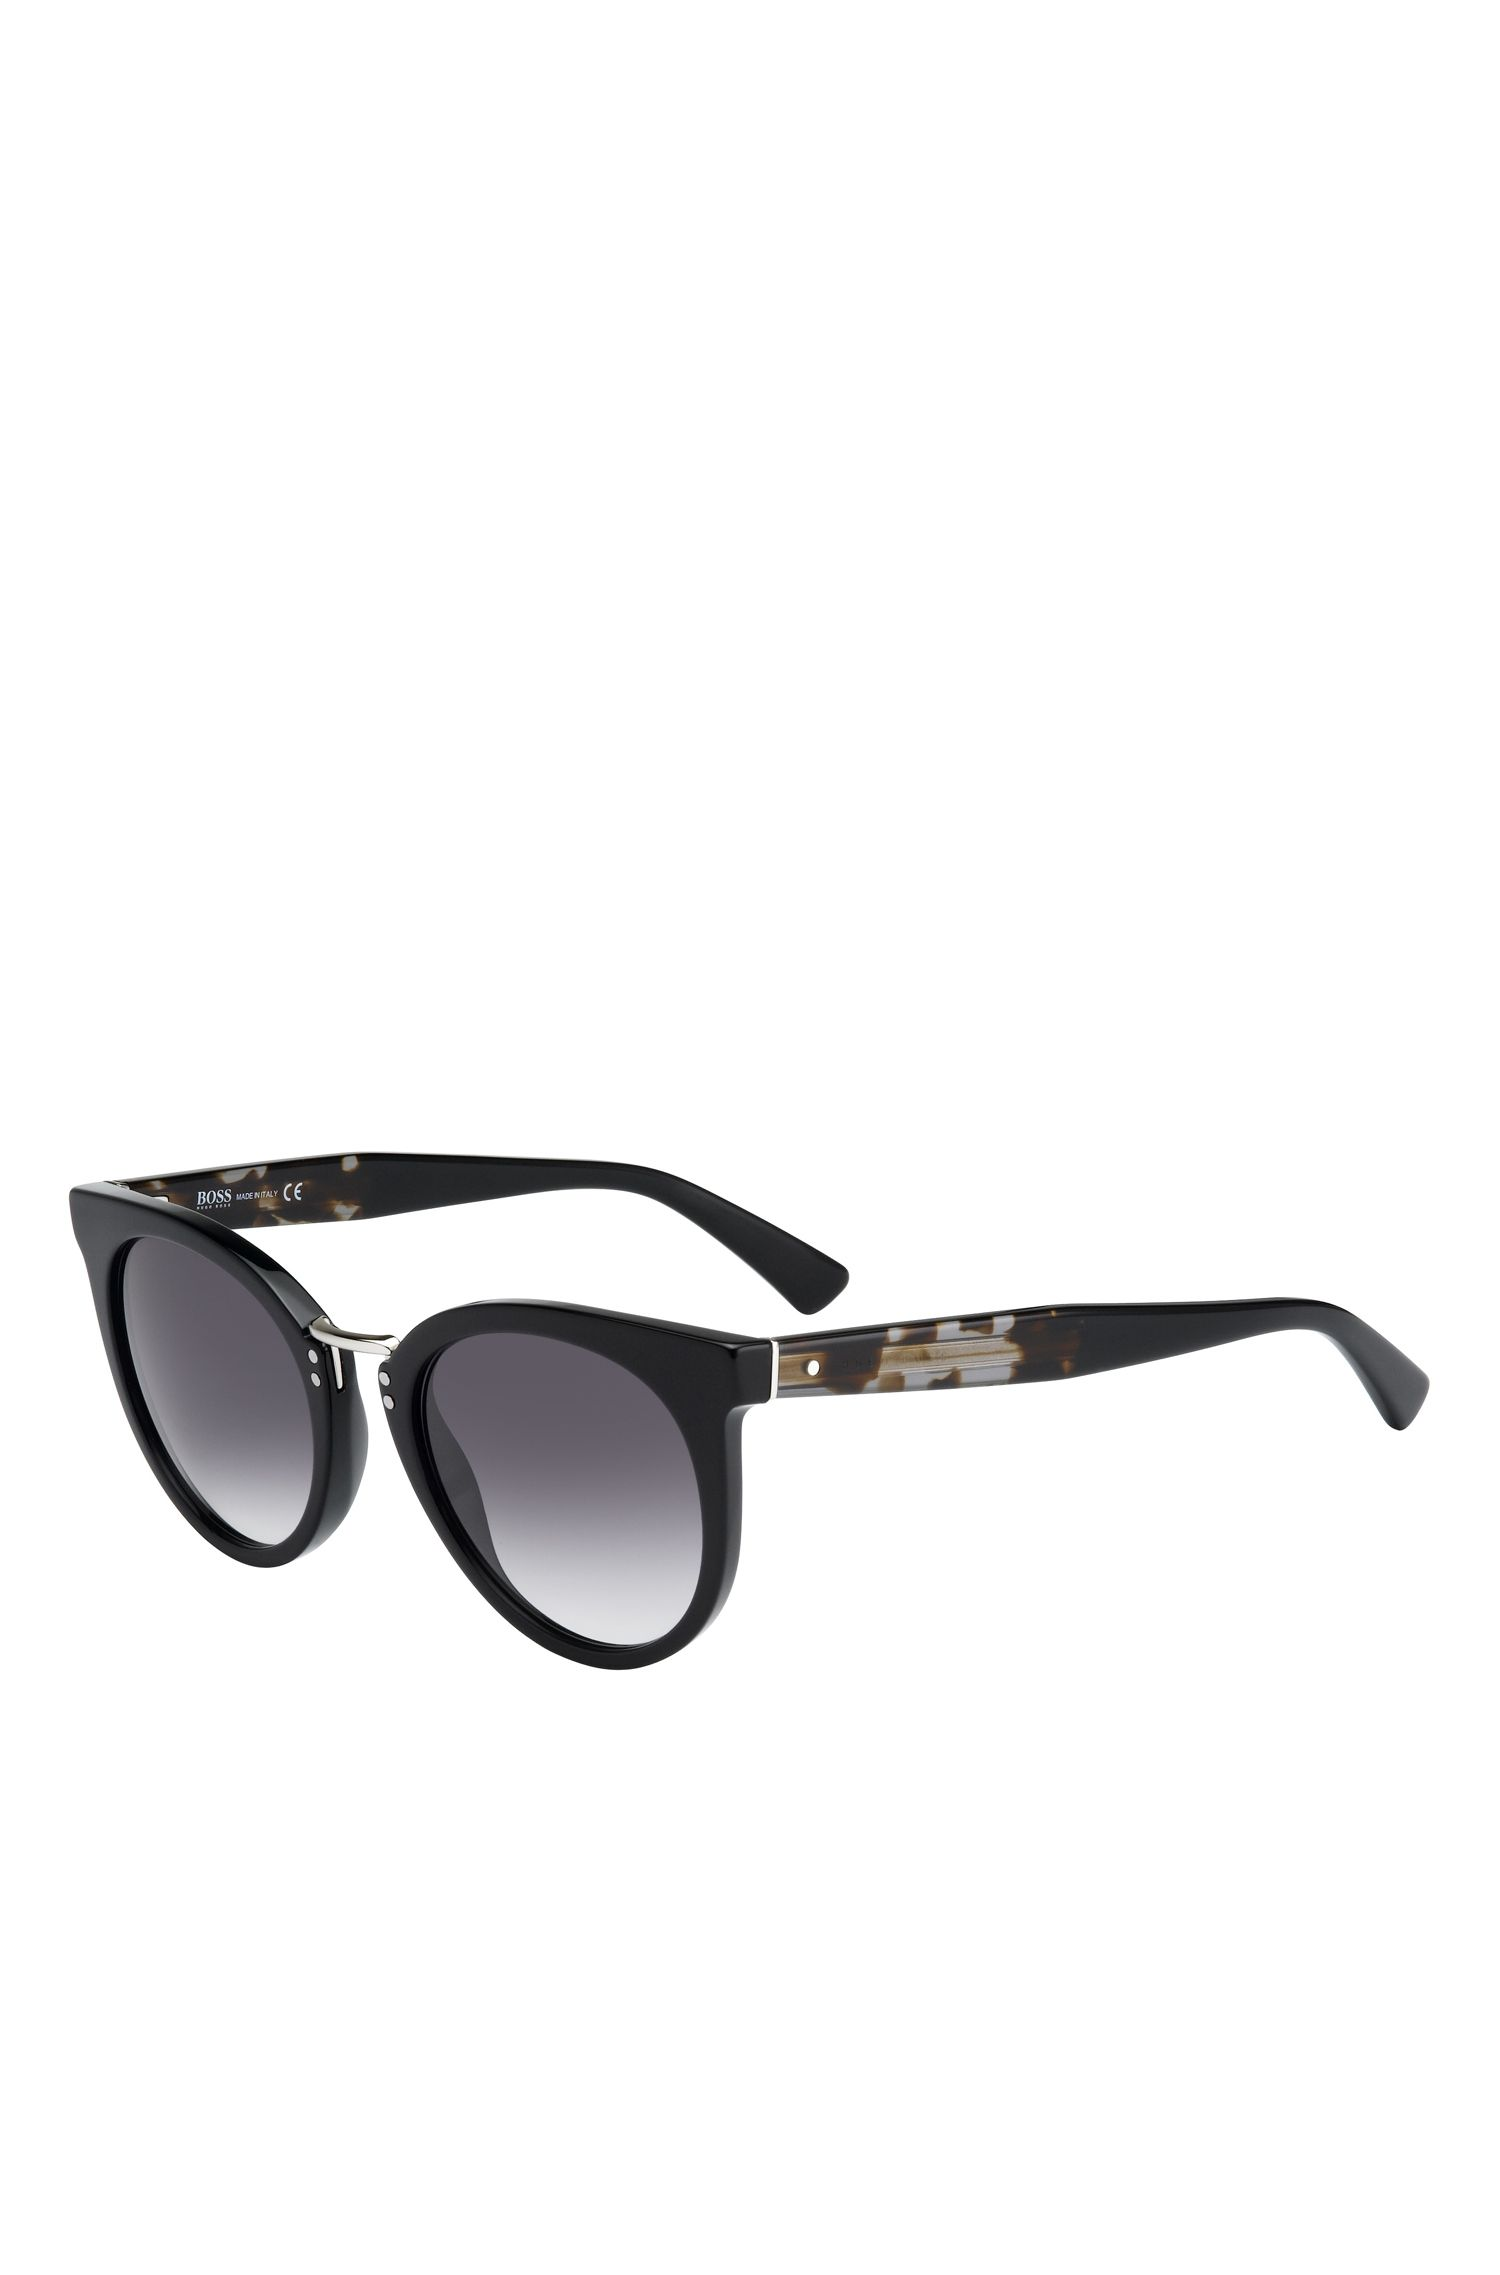 Black Lens Rounded Cateye Havana Sunglasses | BOSS 0793S